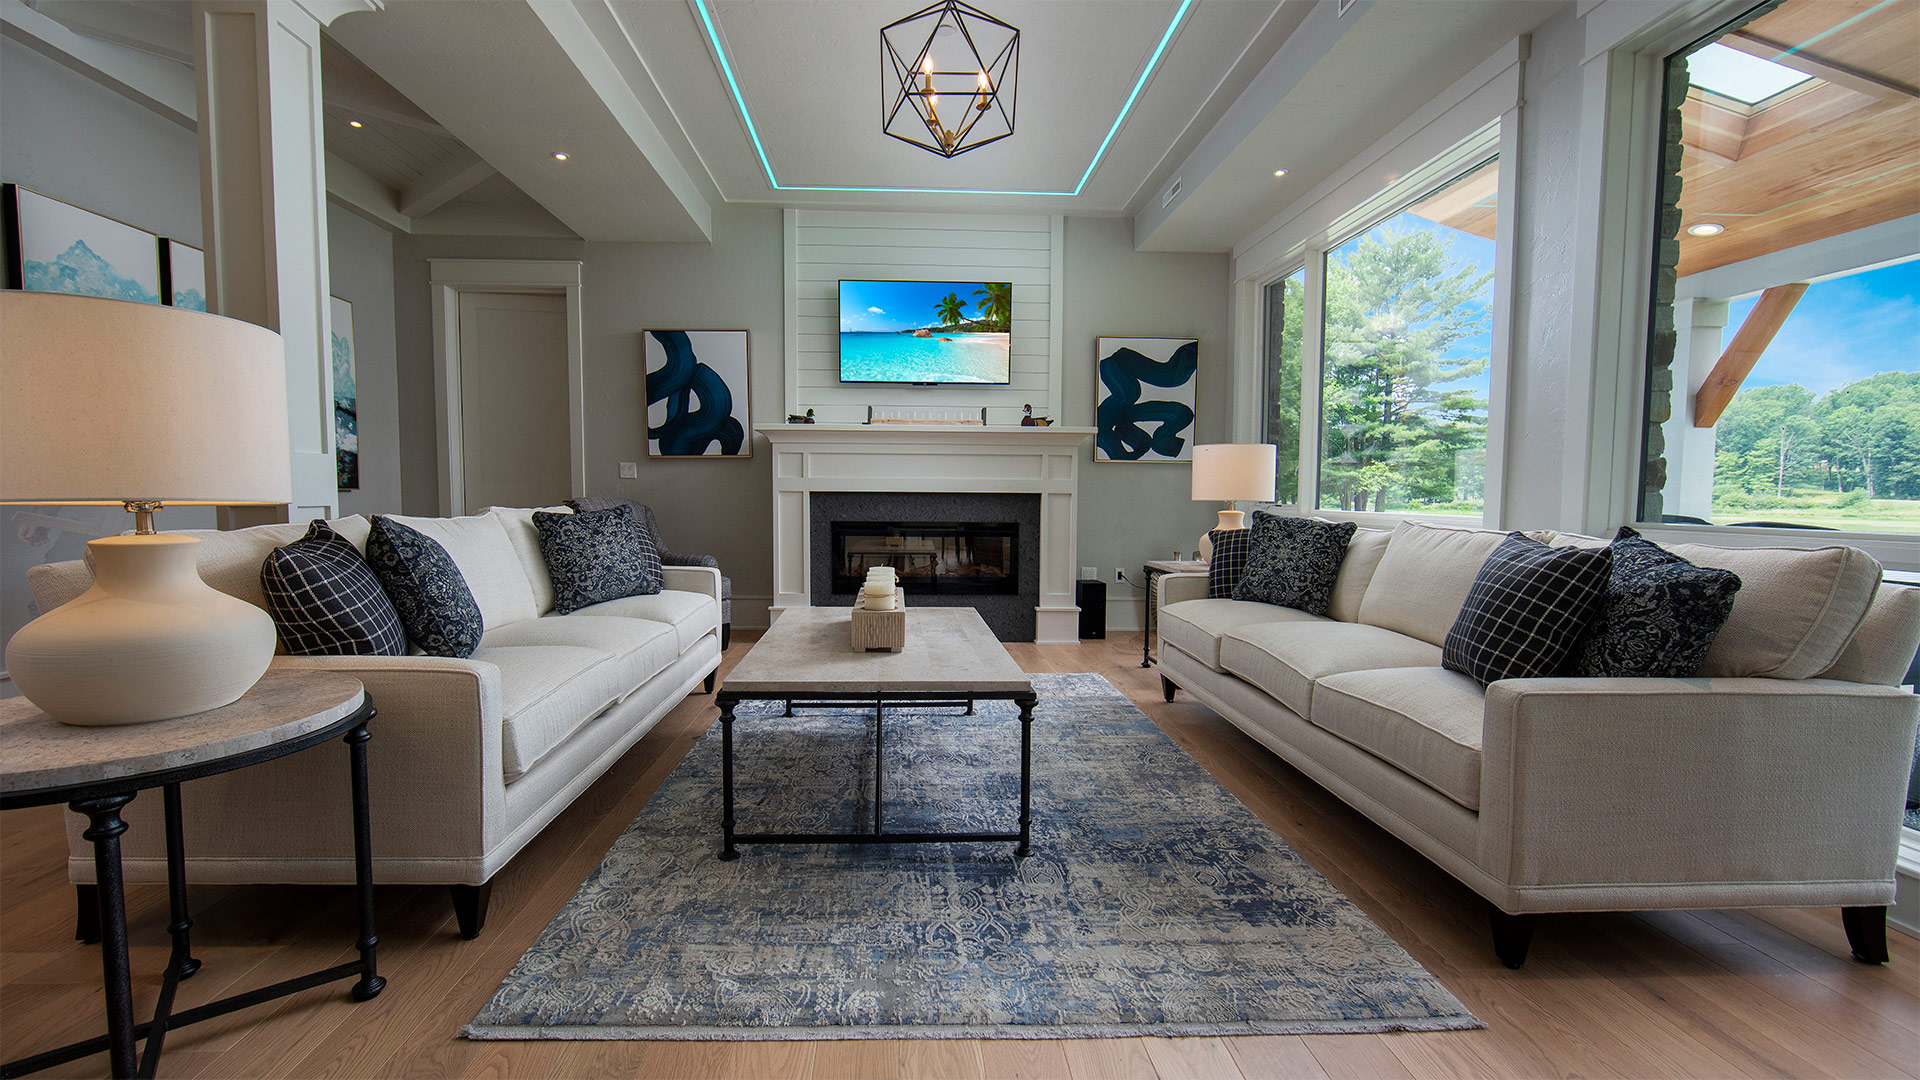 an interior shot of the living area. There are two neutral colored couches across from each other with a coffee table between them. There is a fireplace with modern art pieces on either side of the mantle.